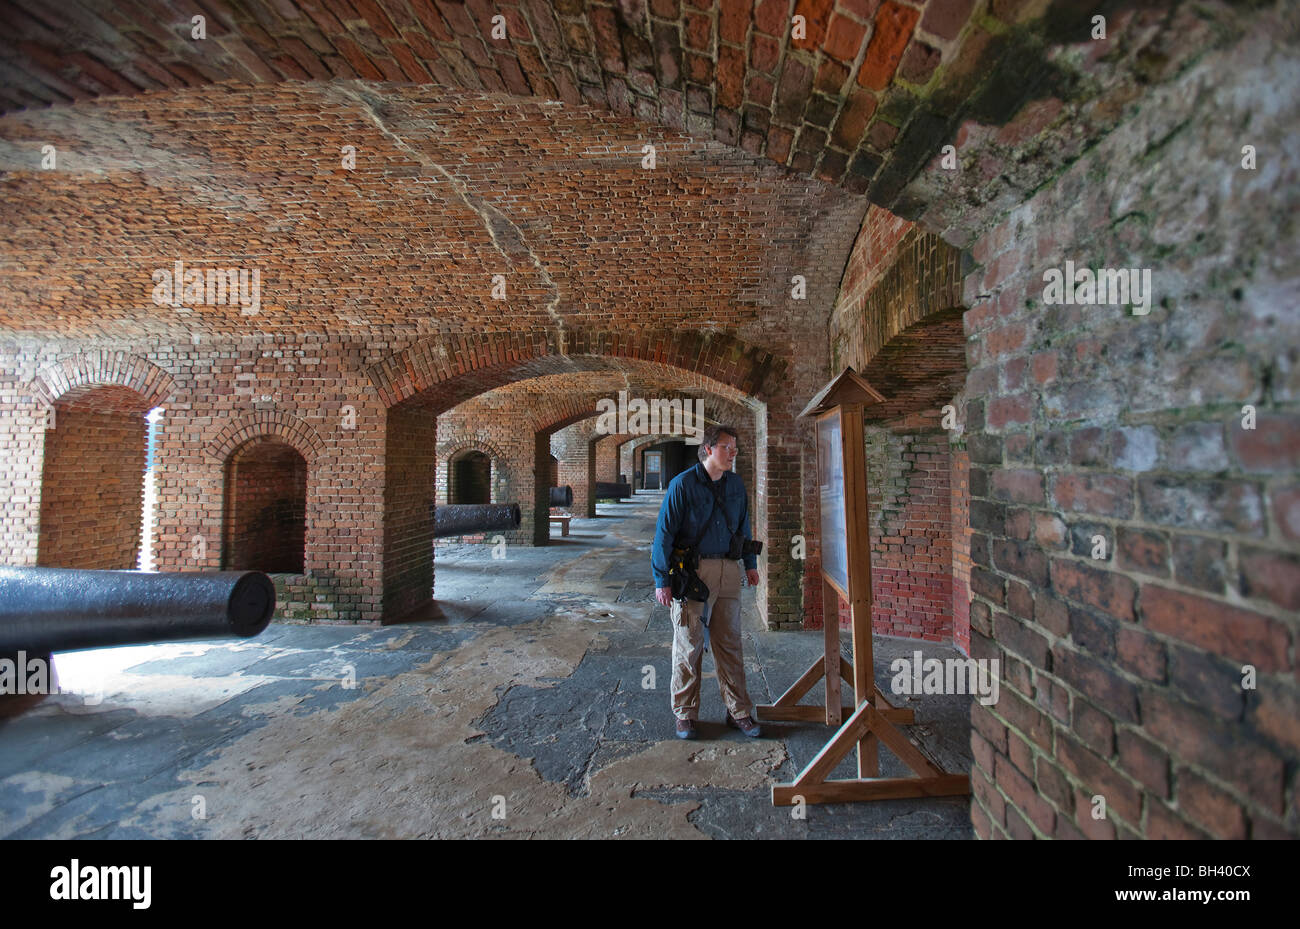 Fort Zachary Taylor State Historic Site Key West Florida FL - Stock Image